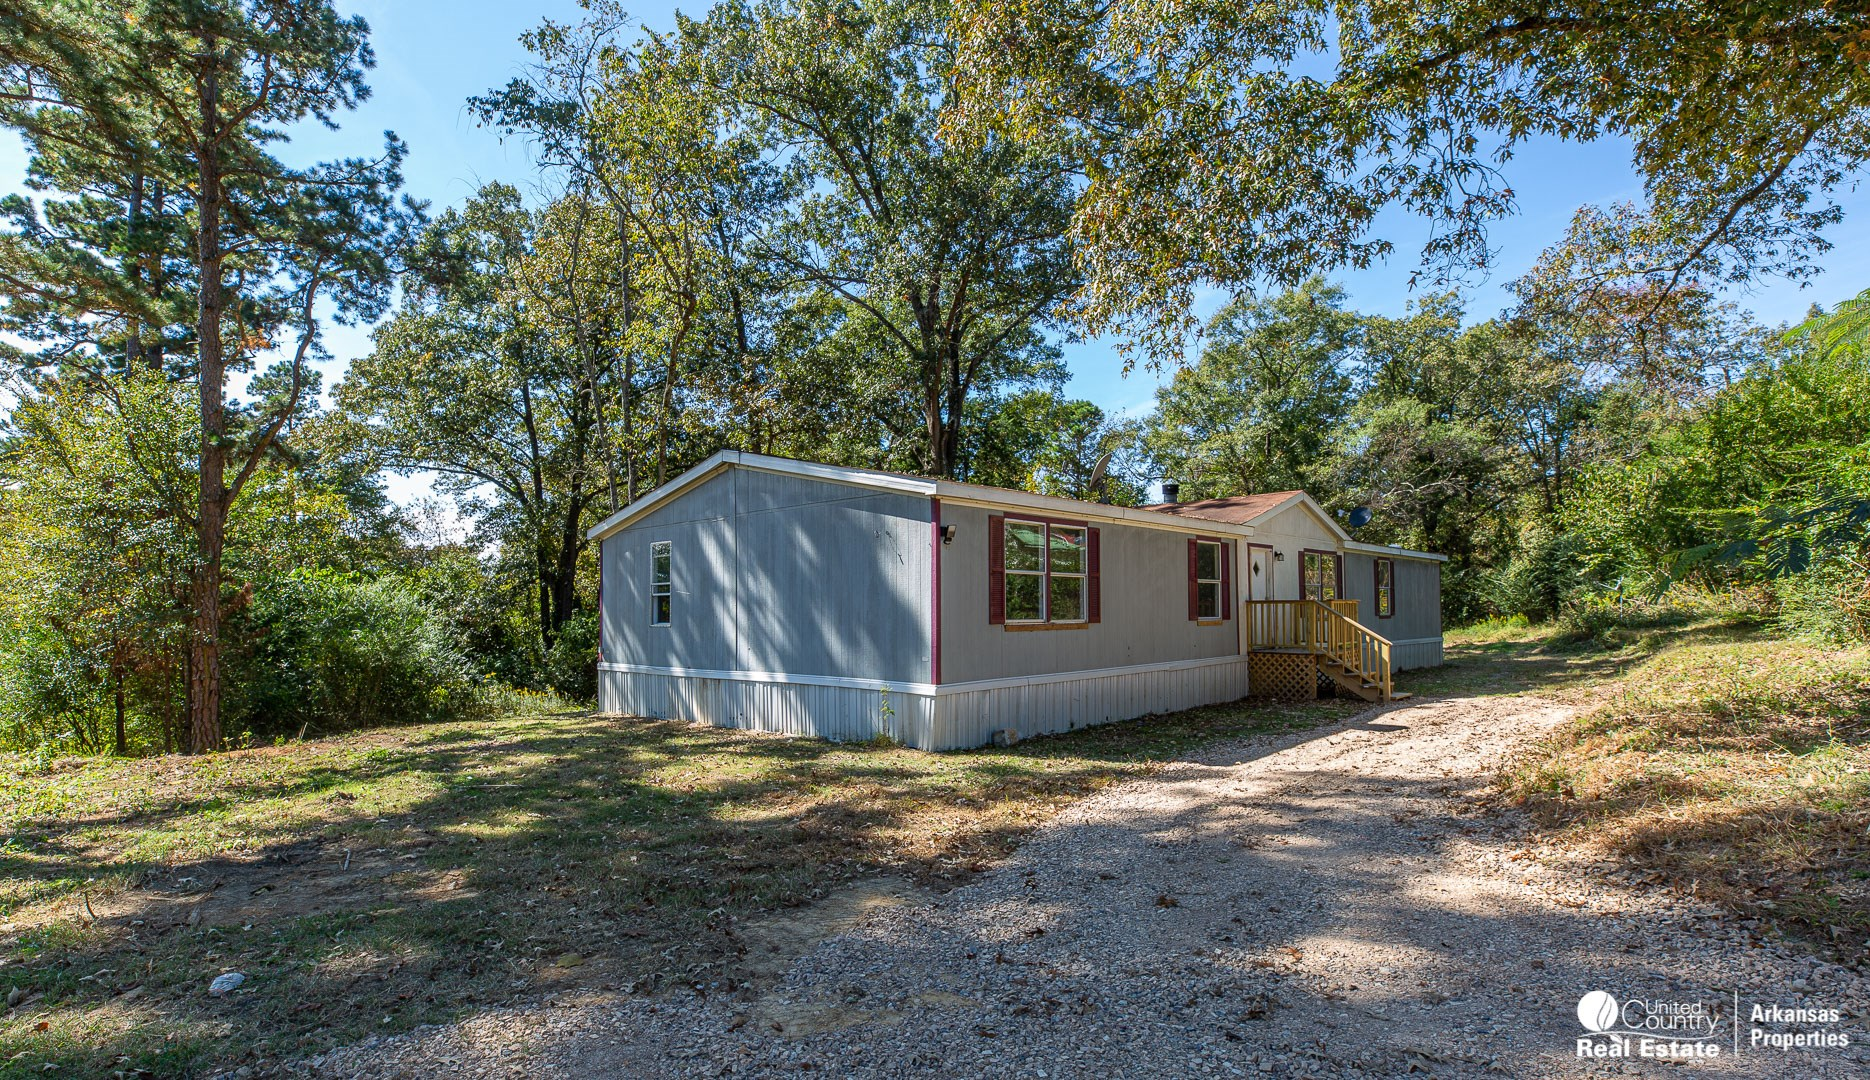 Mobile Home on 2 acres in Hatfield